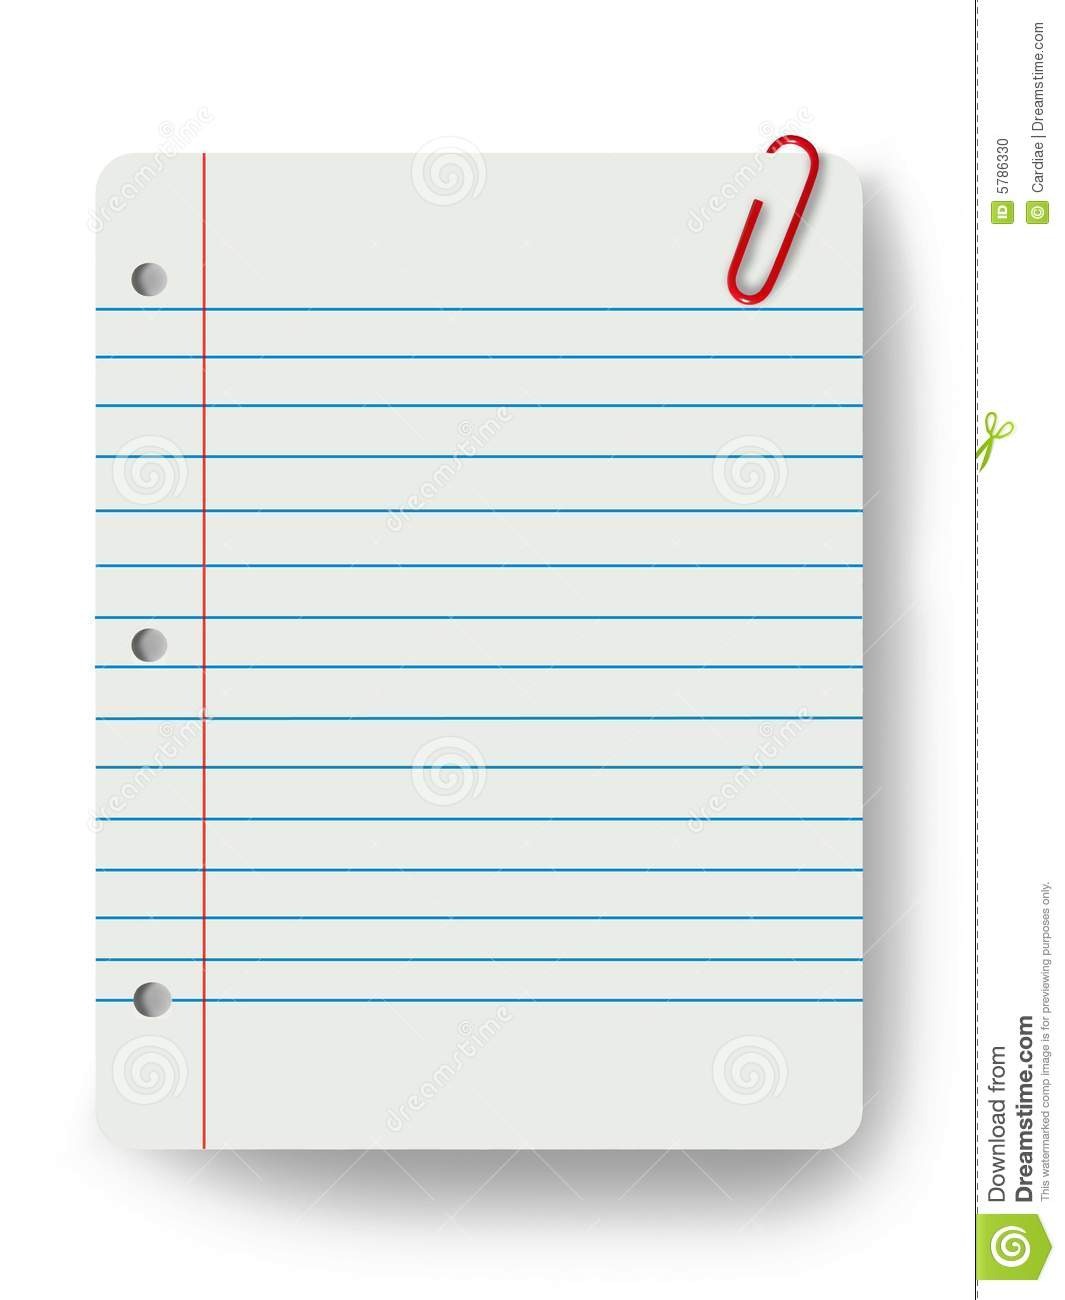 Note Pad Clipart - Clipart Suggest